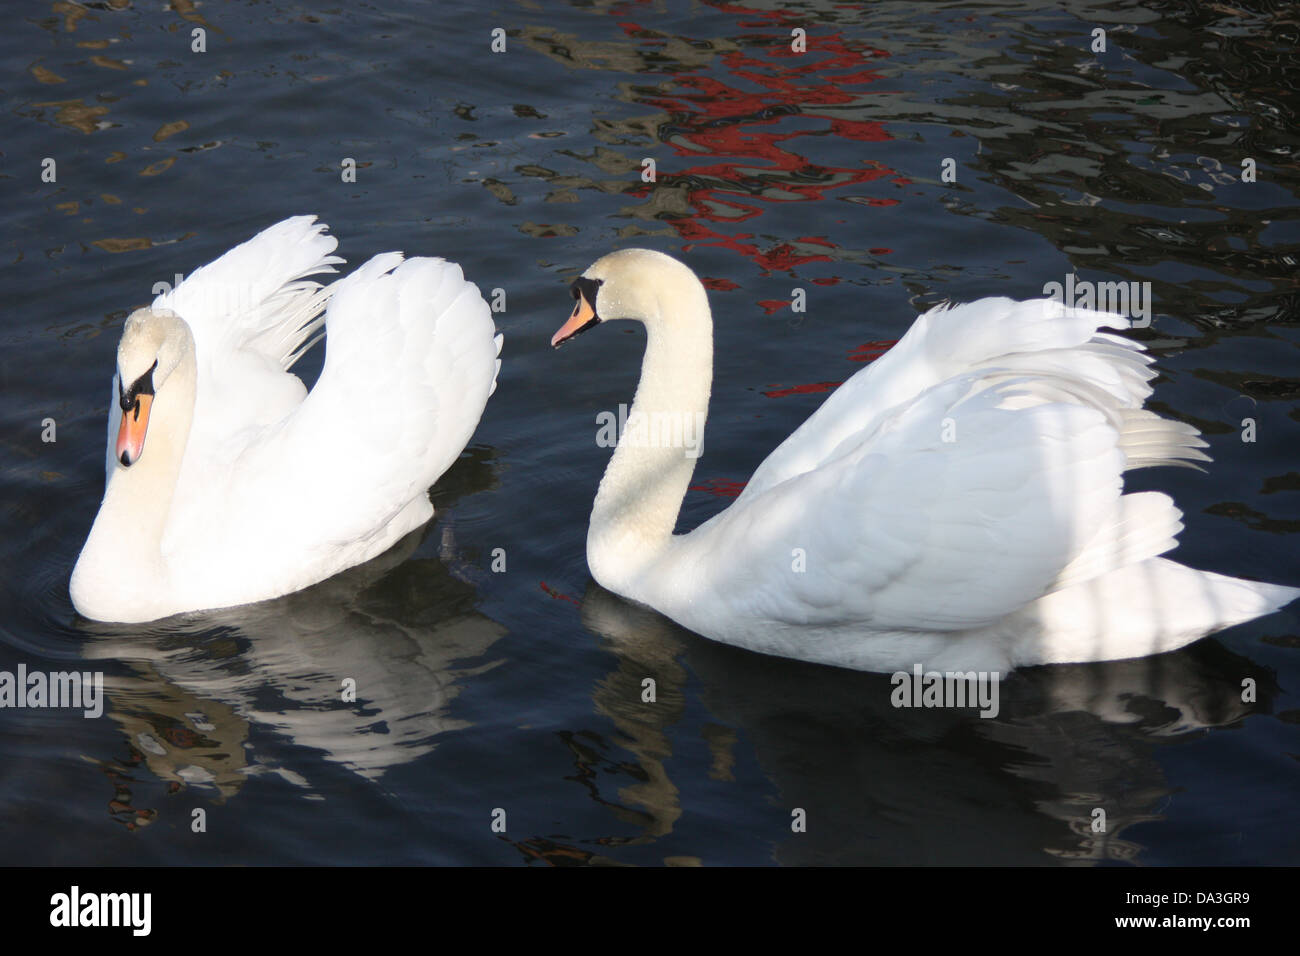 Swans ruffling their feathers - Stock Image